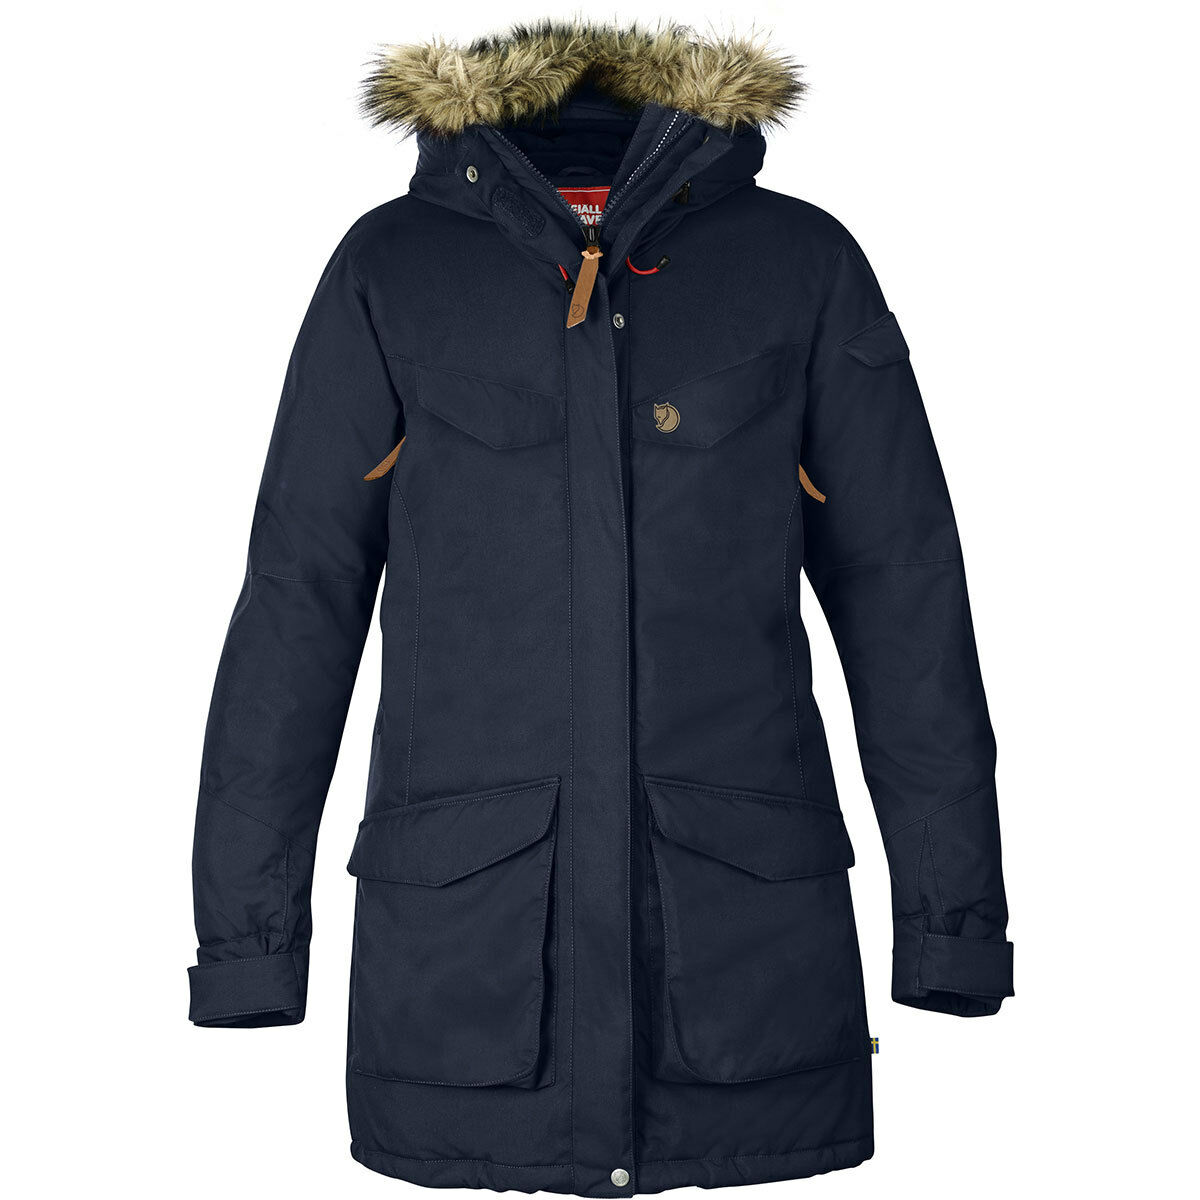 Fjällräven  Nuuk Parka Womens XL warmer you will hardly. highly insulating filling NEW  save 60% discount